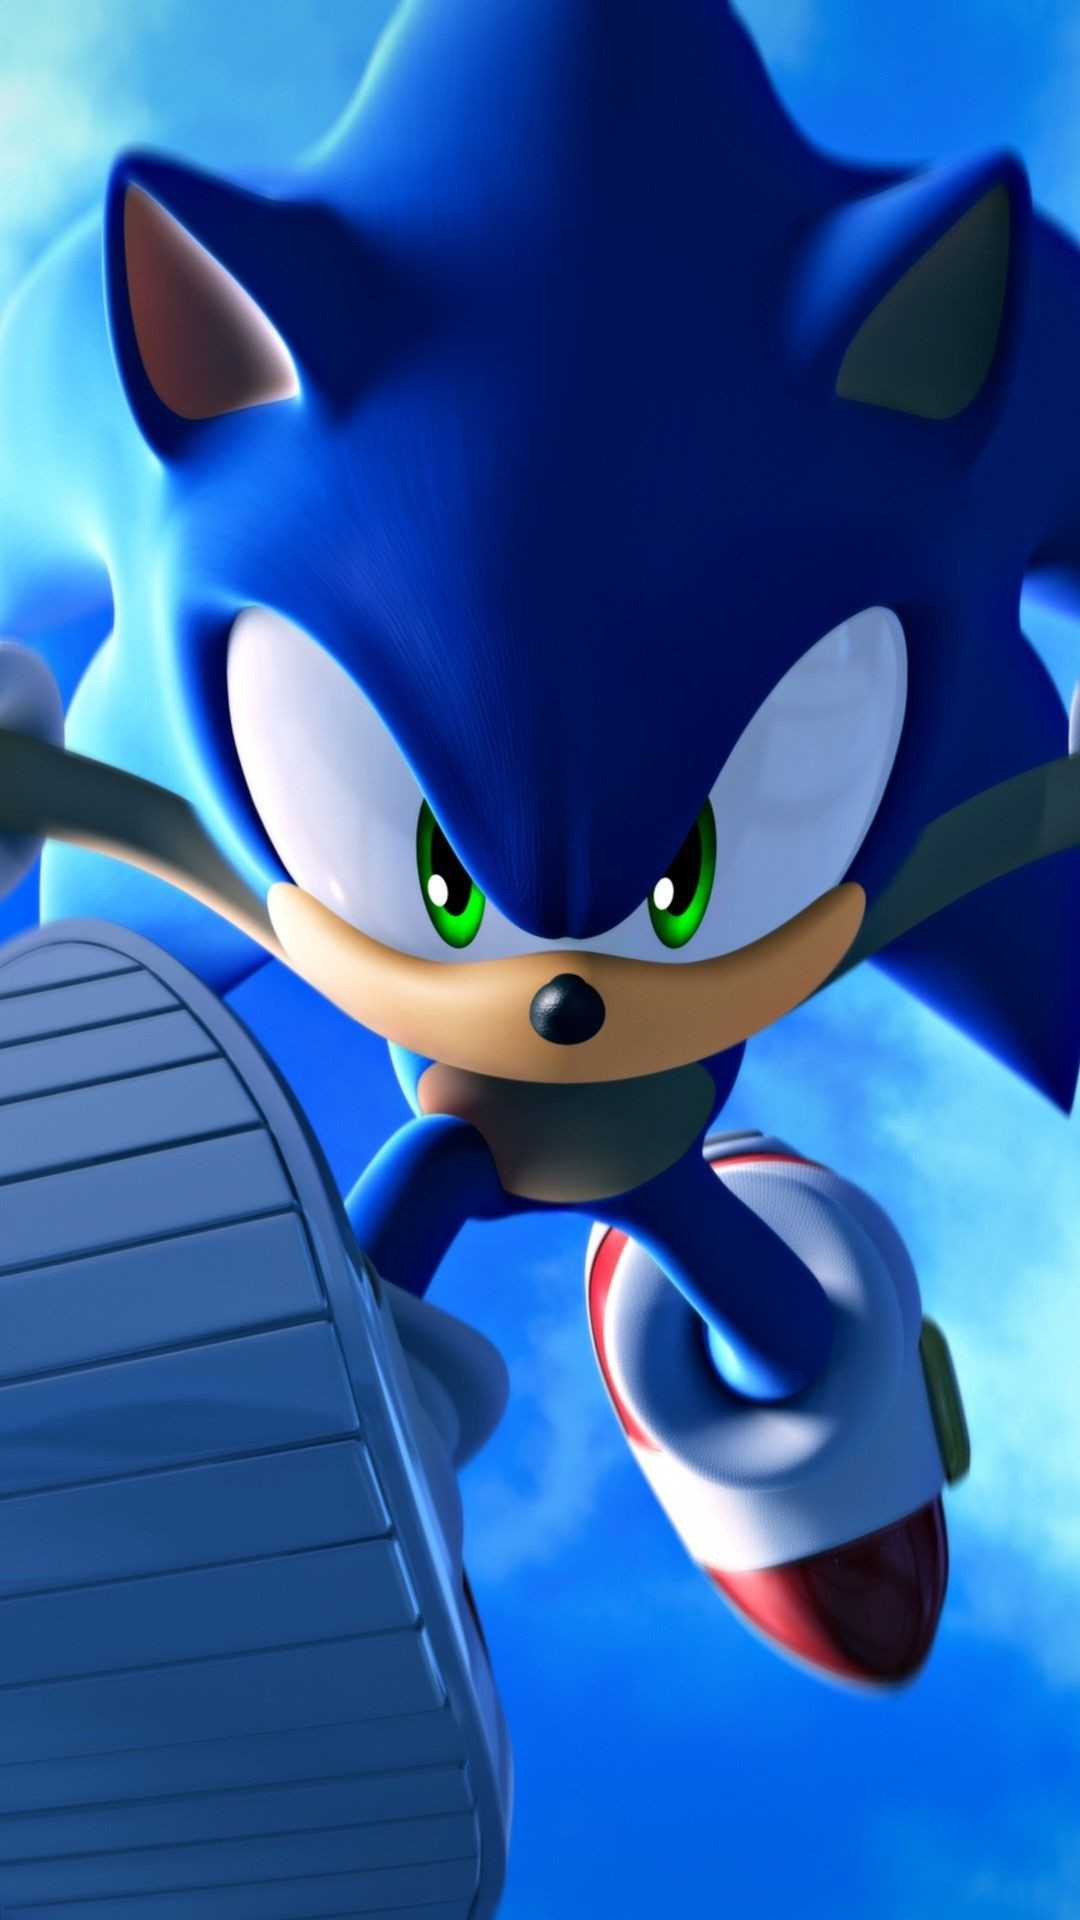 Sonic The Hedgehog free wallpaper for android